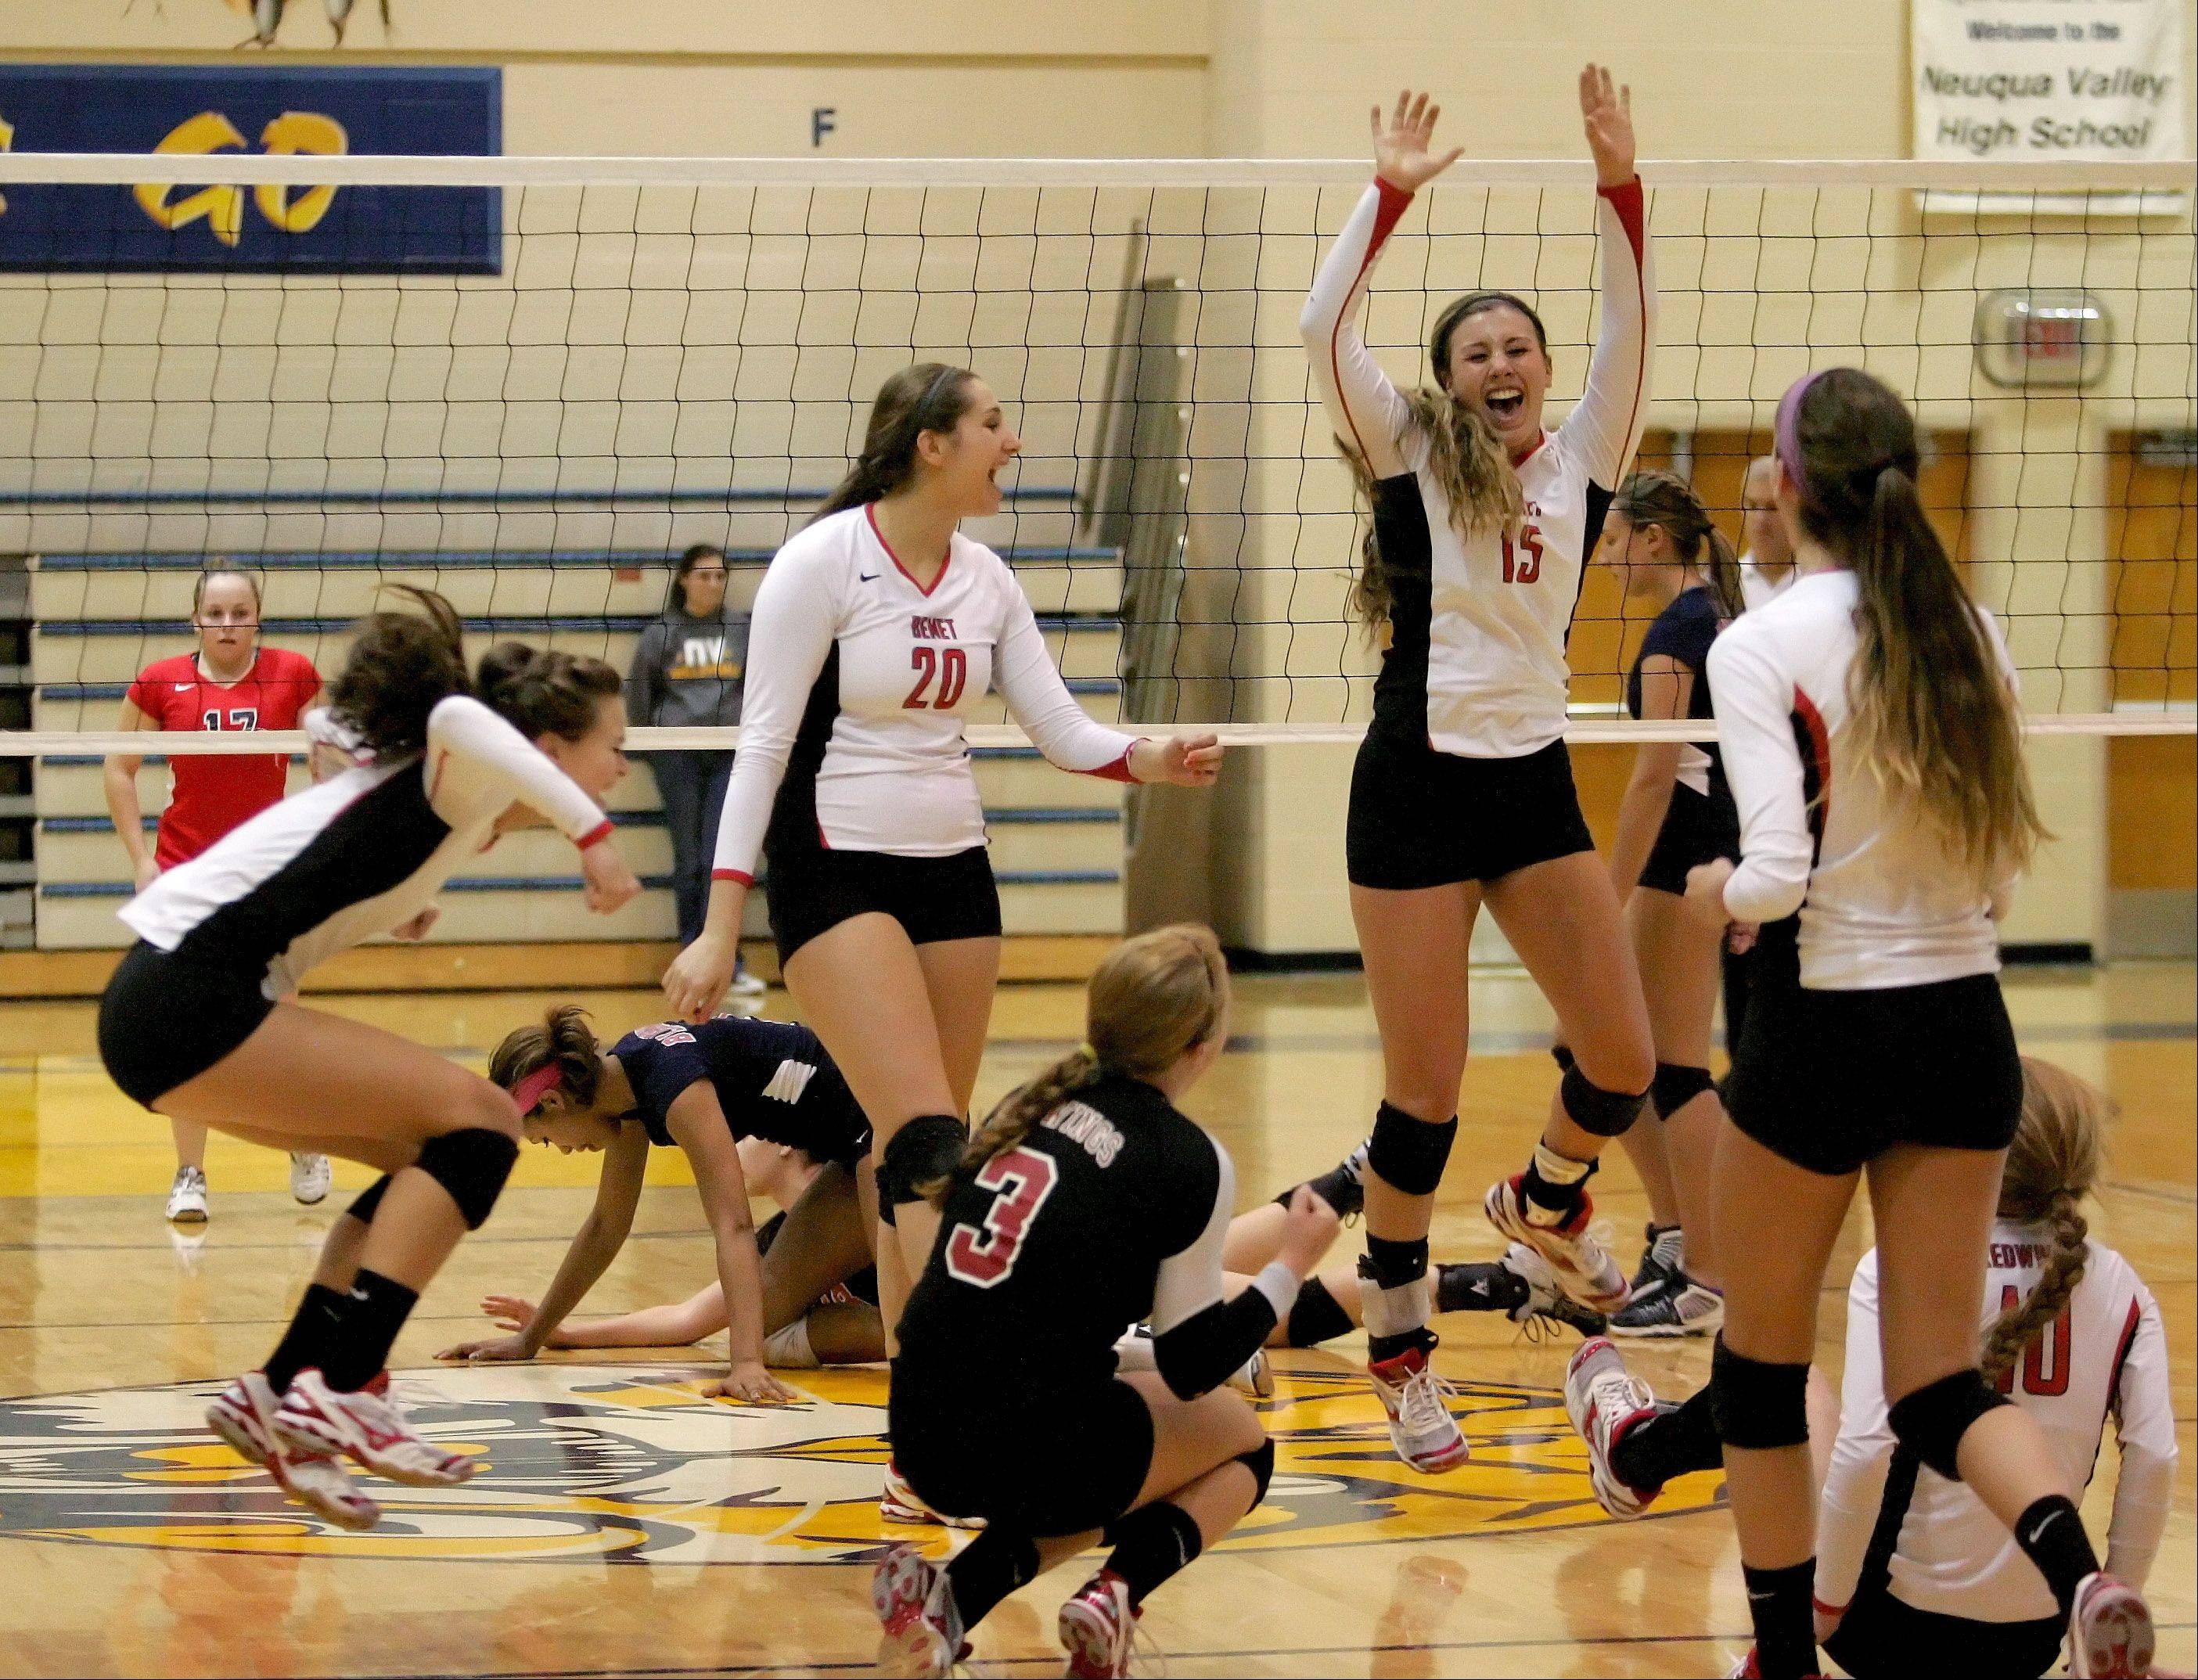 Benet reacts to their 2-0 win over West Aurora in girls volleyball Neuqua Valley sectional semifinals in Naperville on Tuesday.